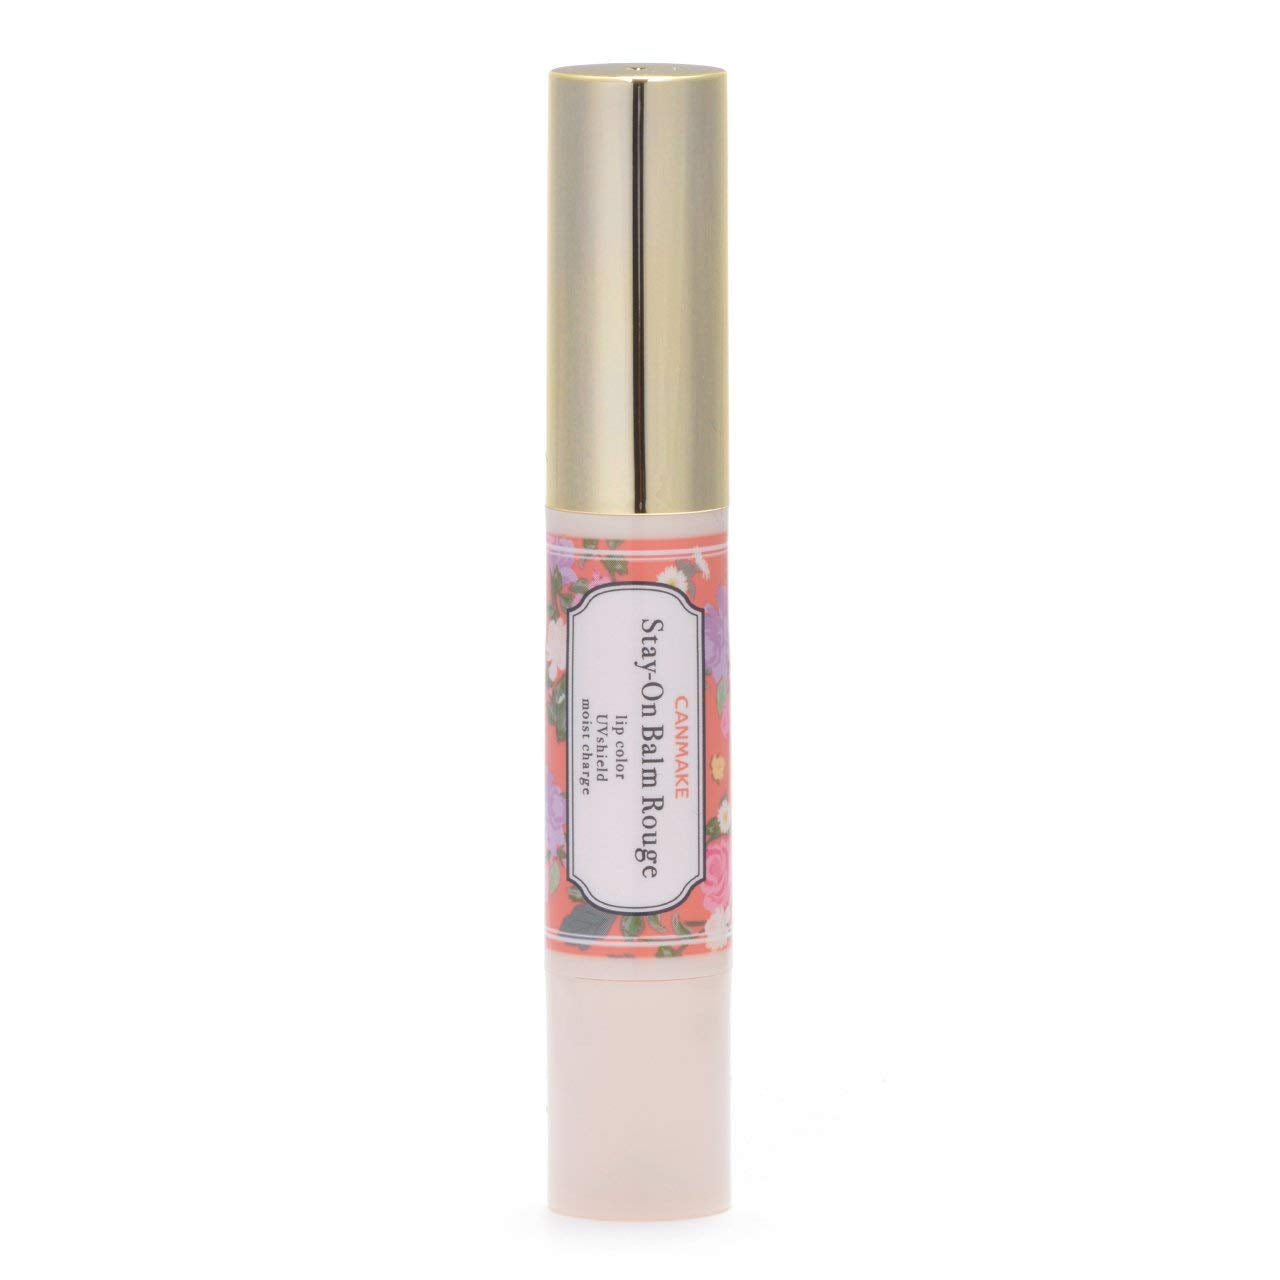 Canmake Stay-On Balm Rouge